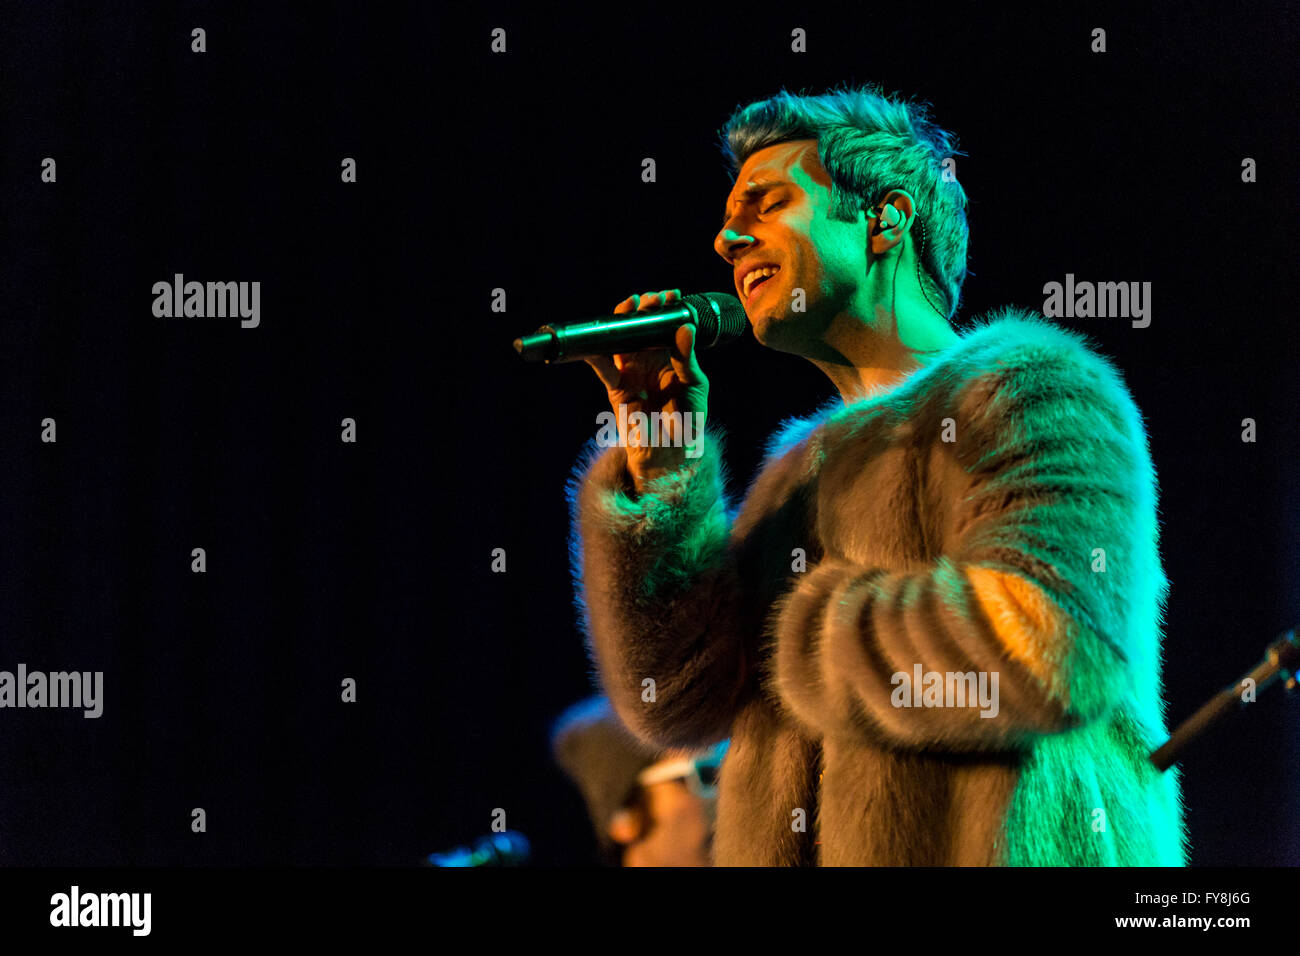 Chad King of A Great Big World @ The Rio Theatre - March 24th 2016 Stock Photo